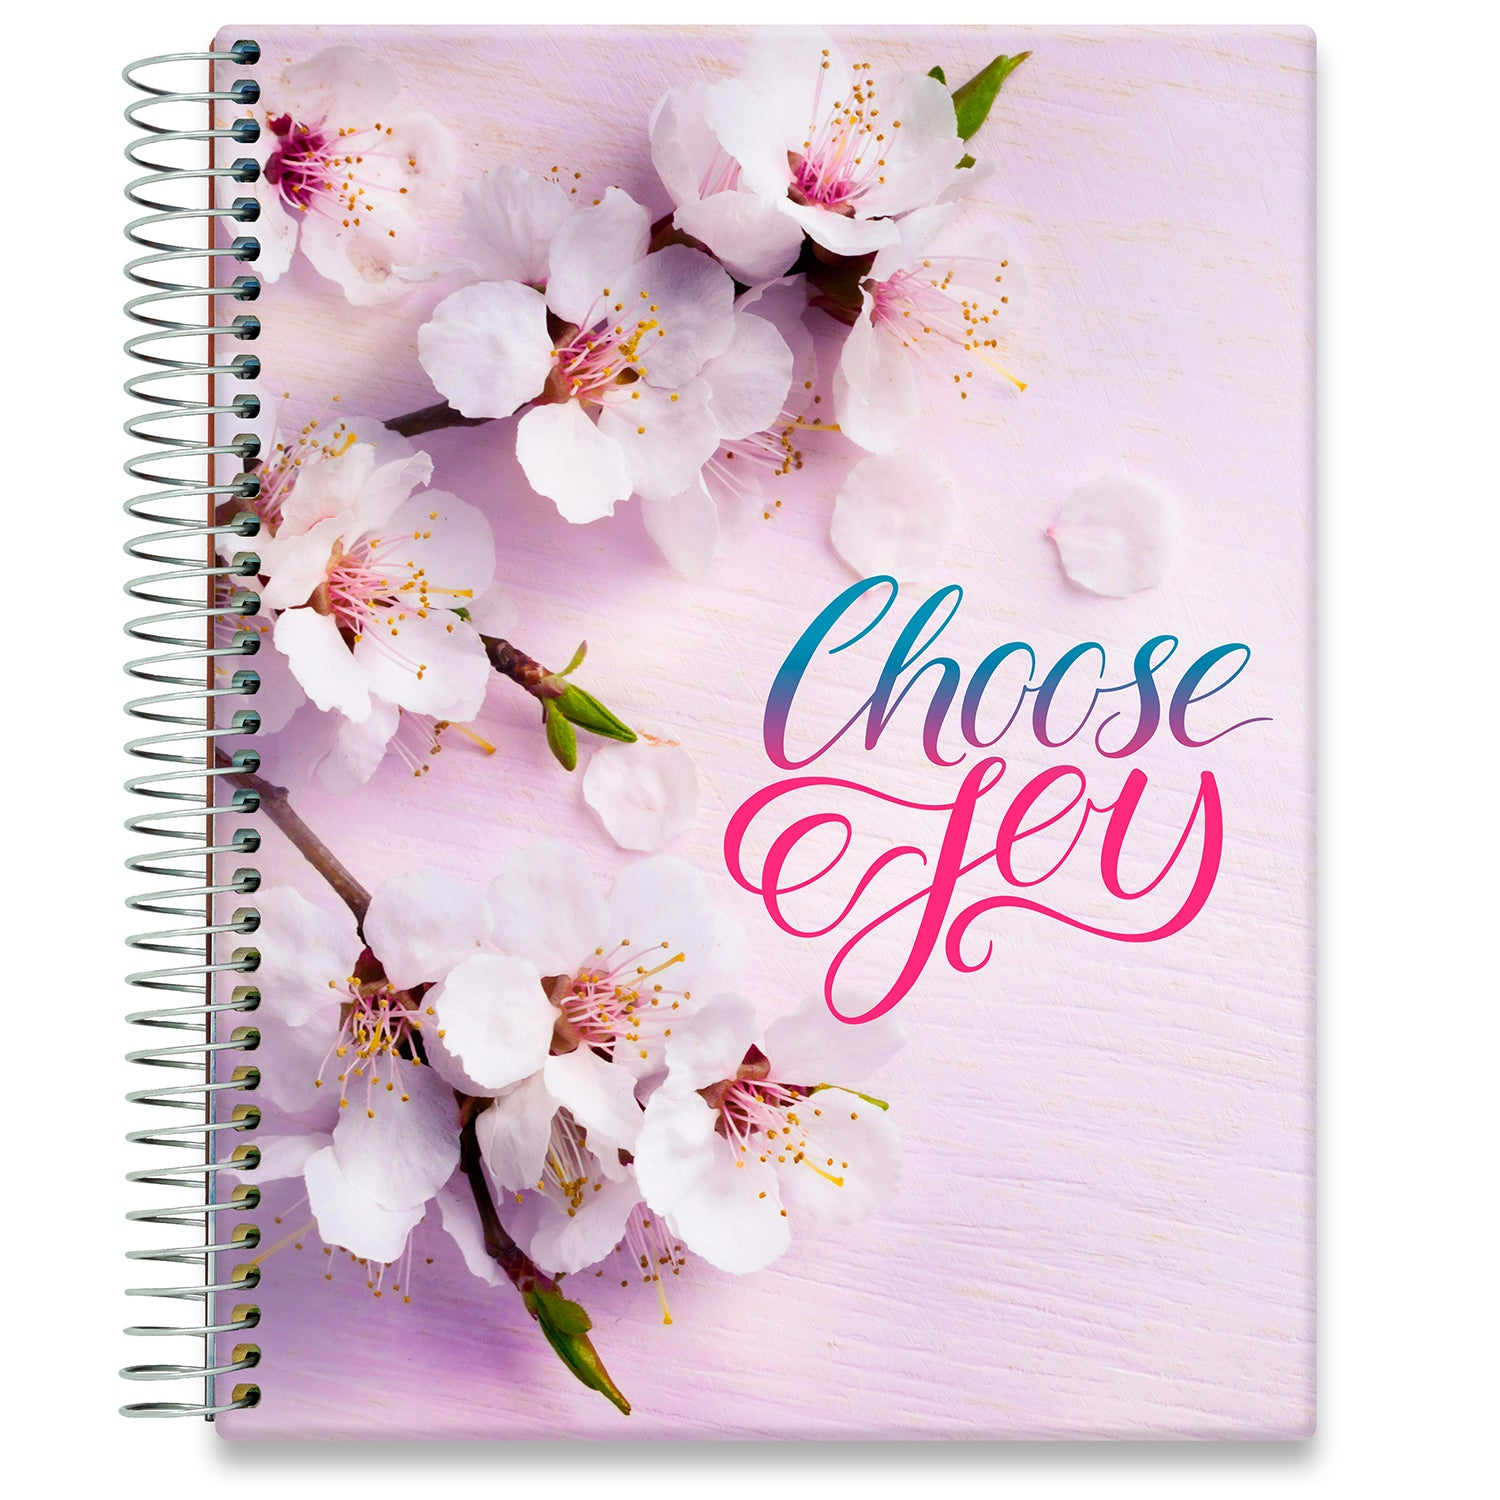 Planner 2021-2022 • April 2021 to June 2022 Academic Year • 8.5x11 Hardcover • Choose Joy Planner Cover